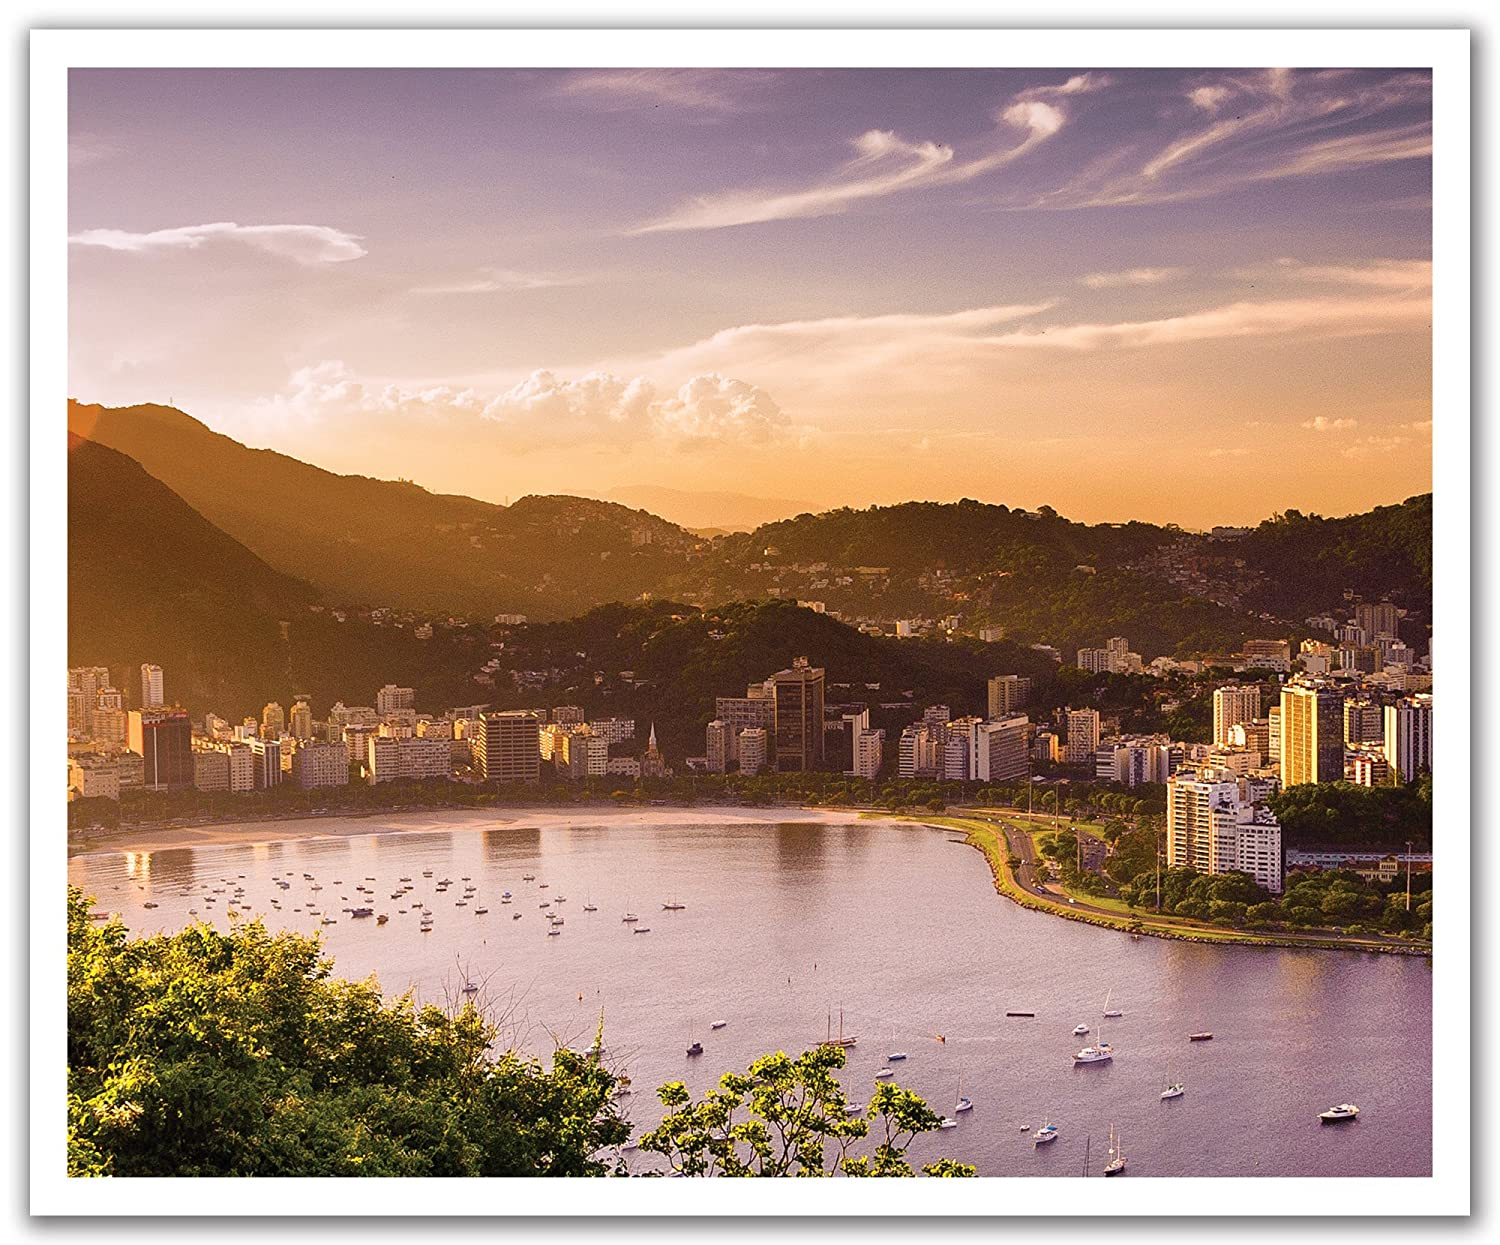 JP London POS2401 uStrip Peel and Stick Removable Wall Decal Sticker Mural Rio Brazil City Bay Skyline 24-Inch by 19.75-Inch